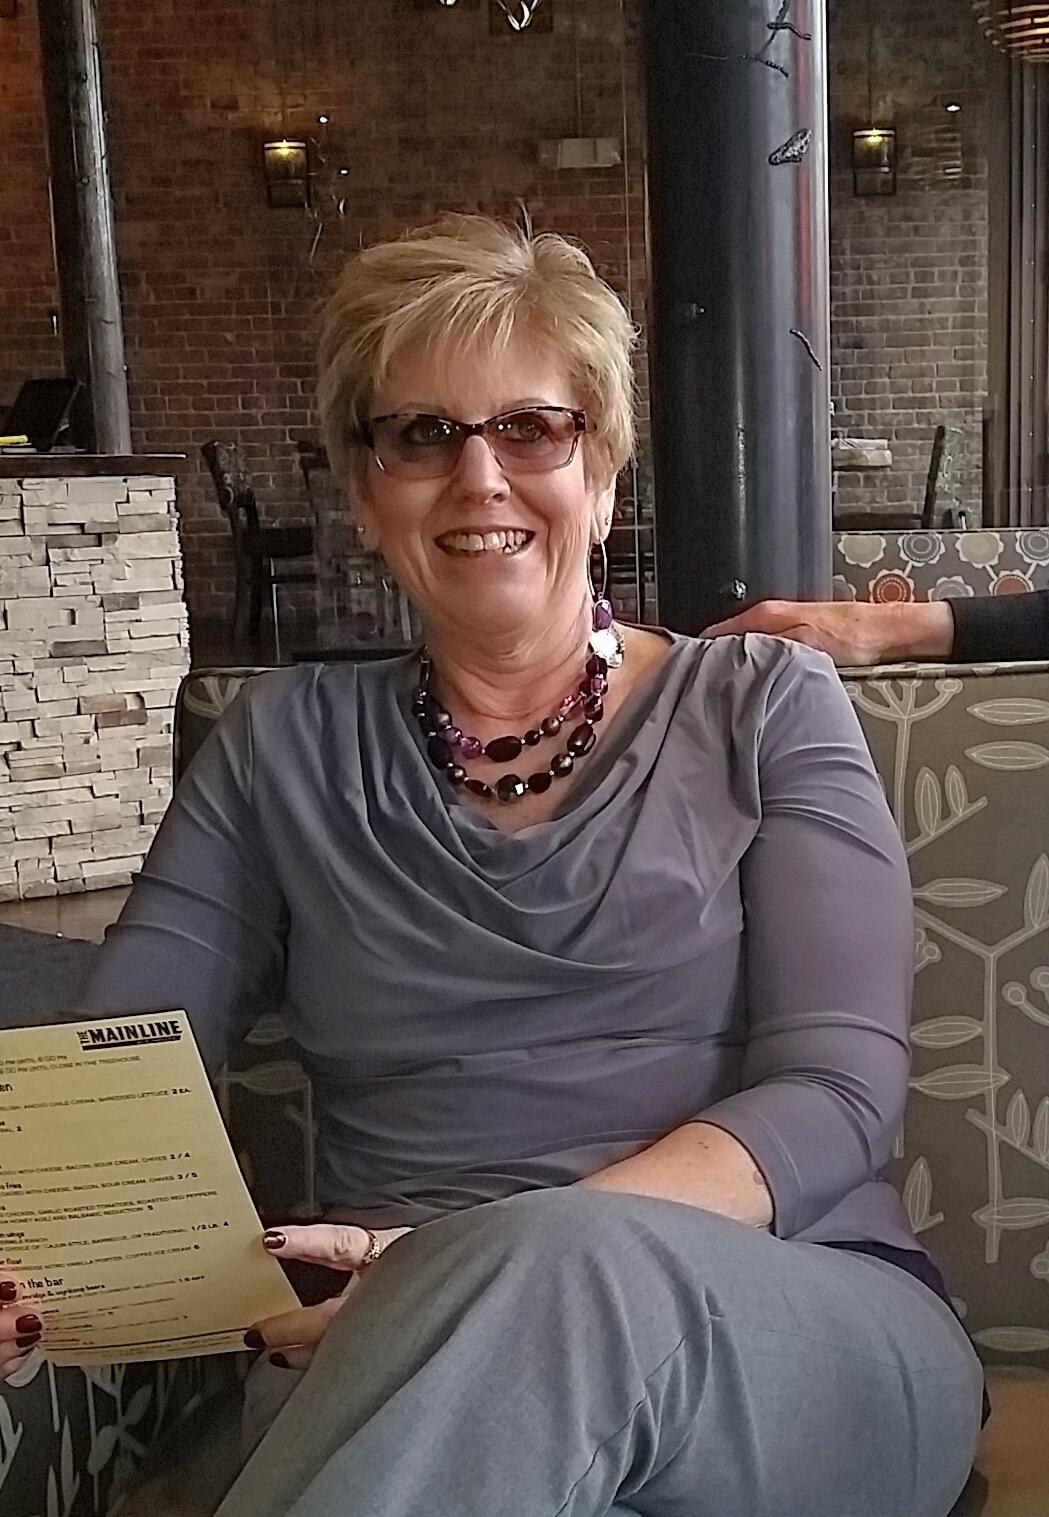 Meetup fort collins over 50